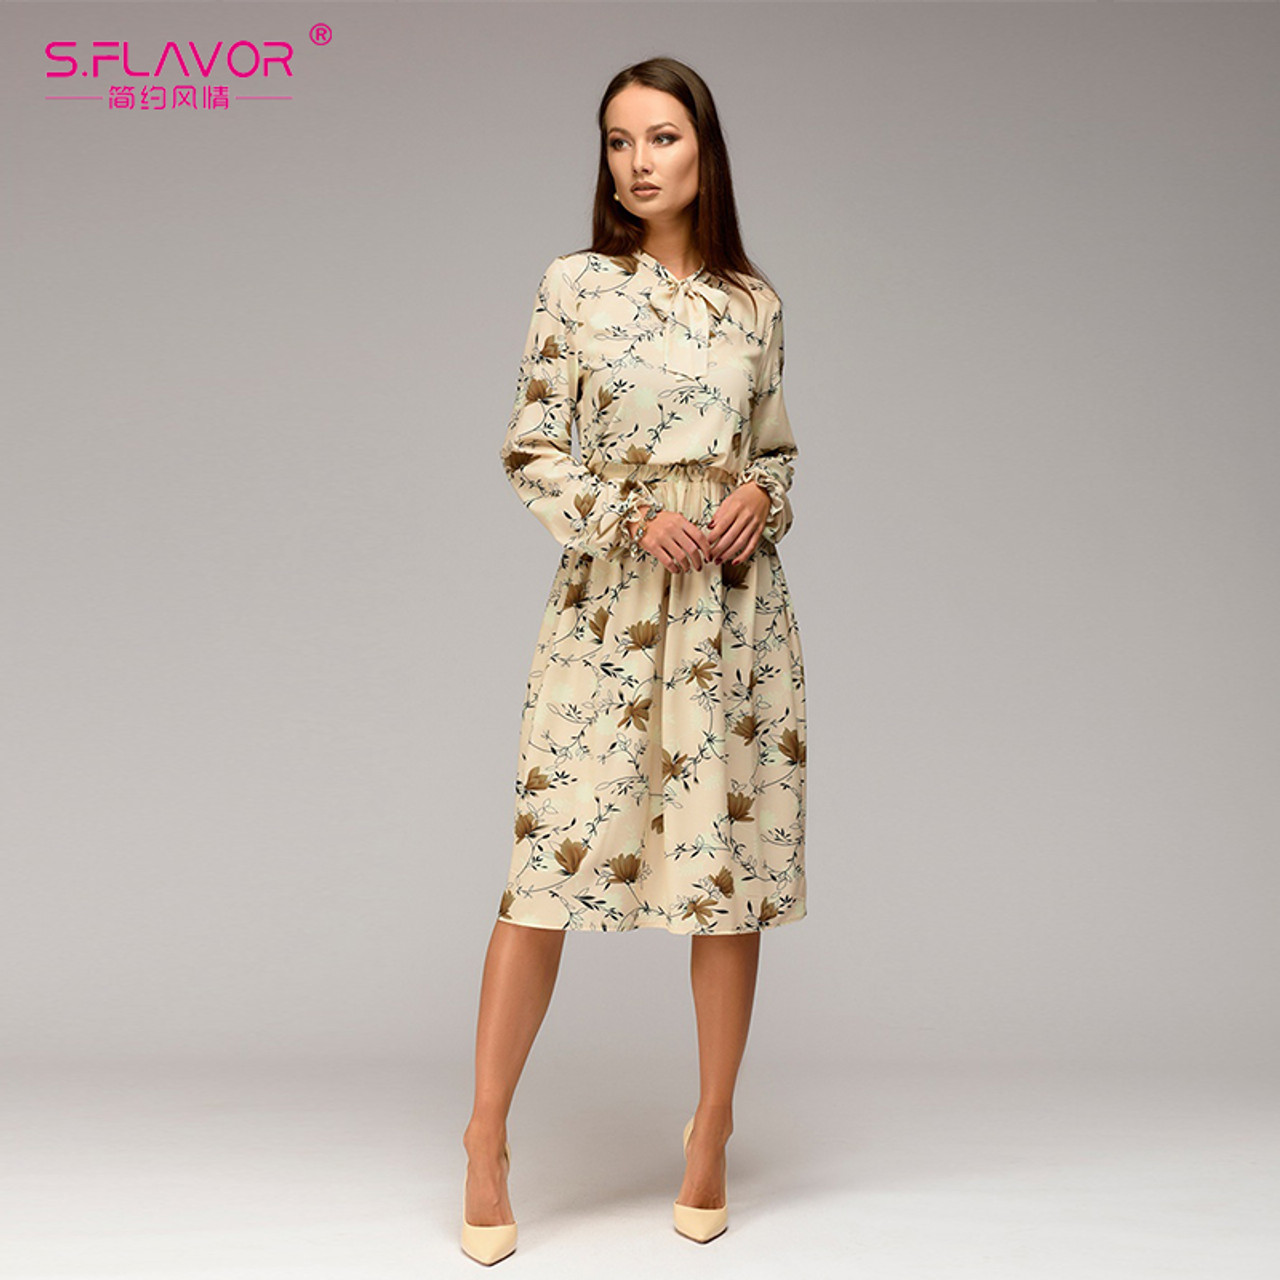 S.FLAVOR Women casual knee-length dress 2018 new arrival long sleeve printing  summer dress for offical lady Women loose vestidos - OnshopDeals.Com 5c3951eb9